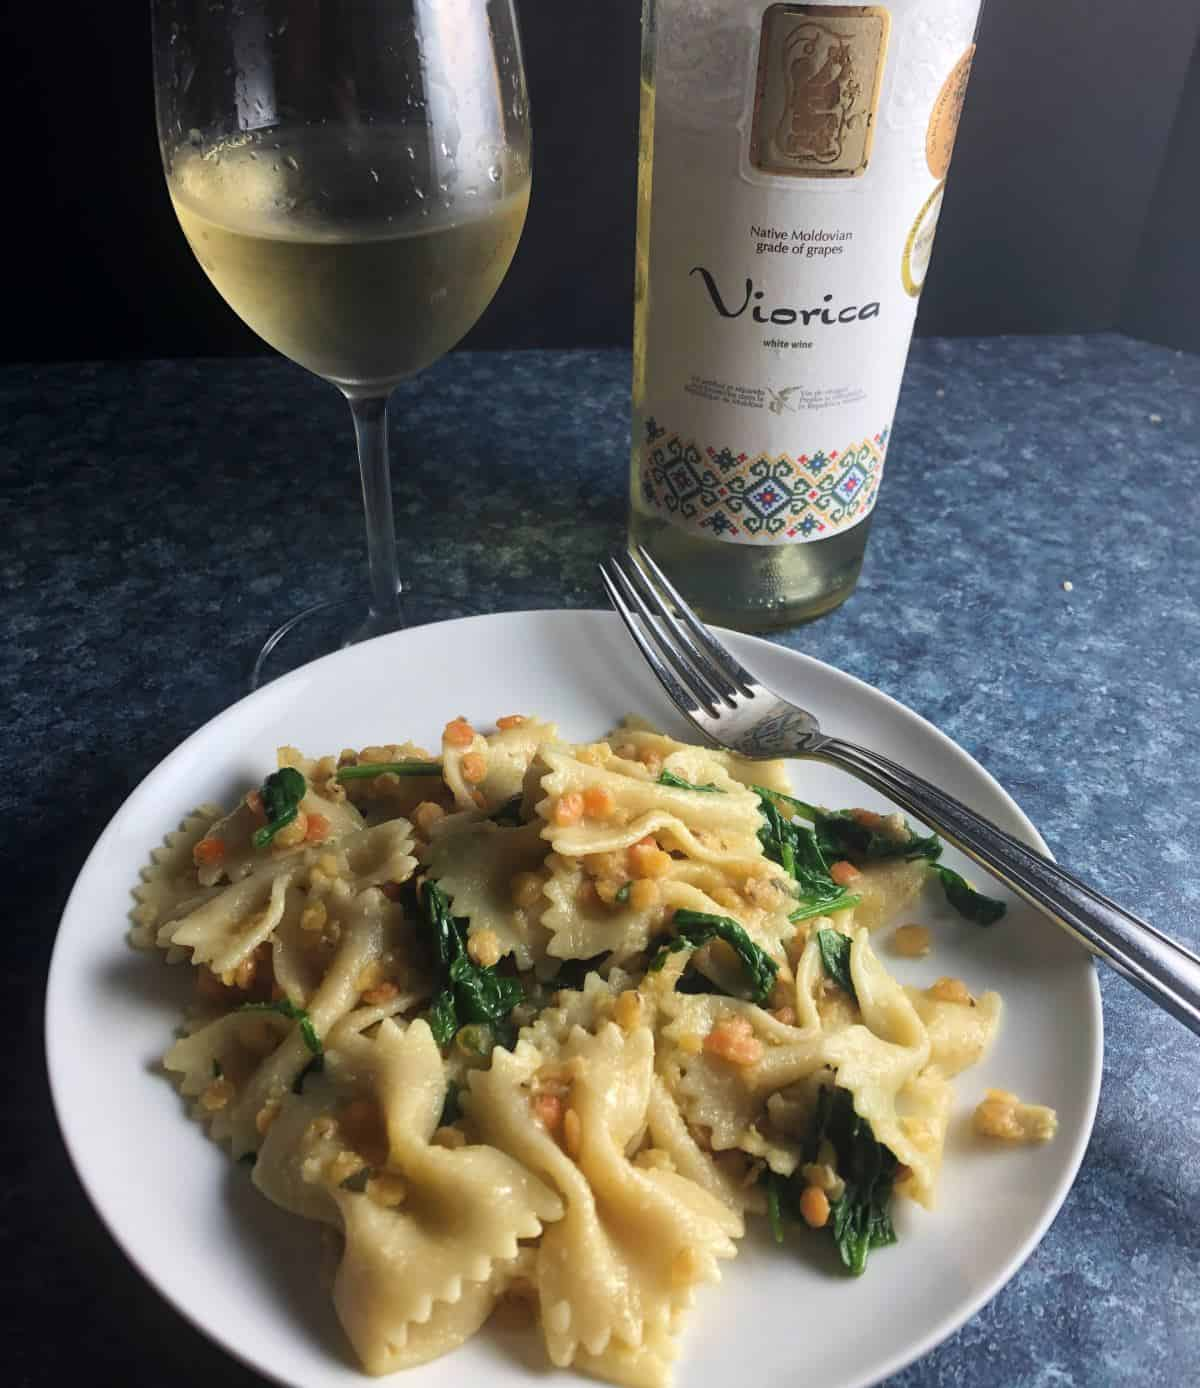 pasta with red lentils and ginger served with a white wine from Moldova.